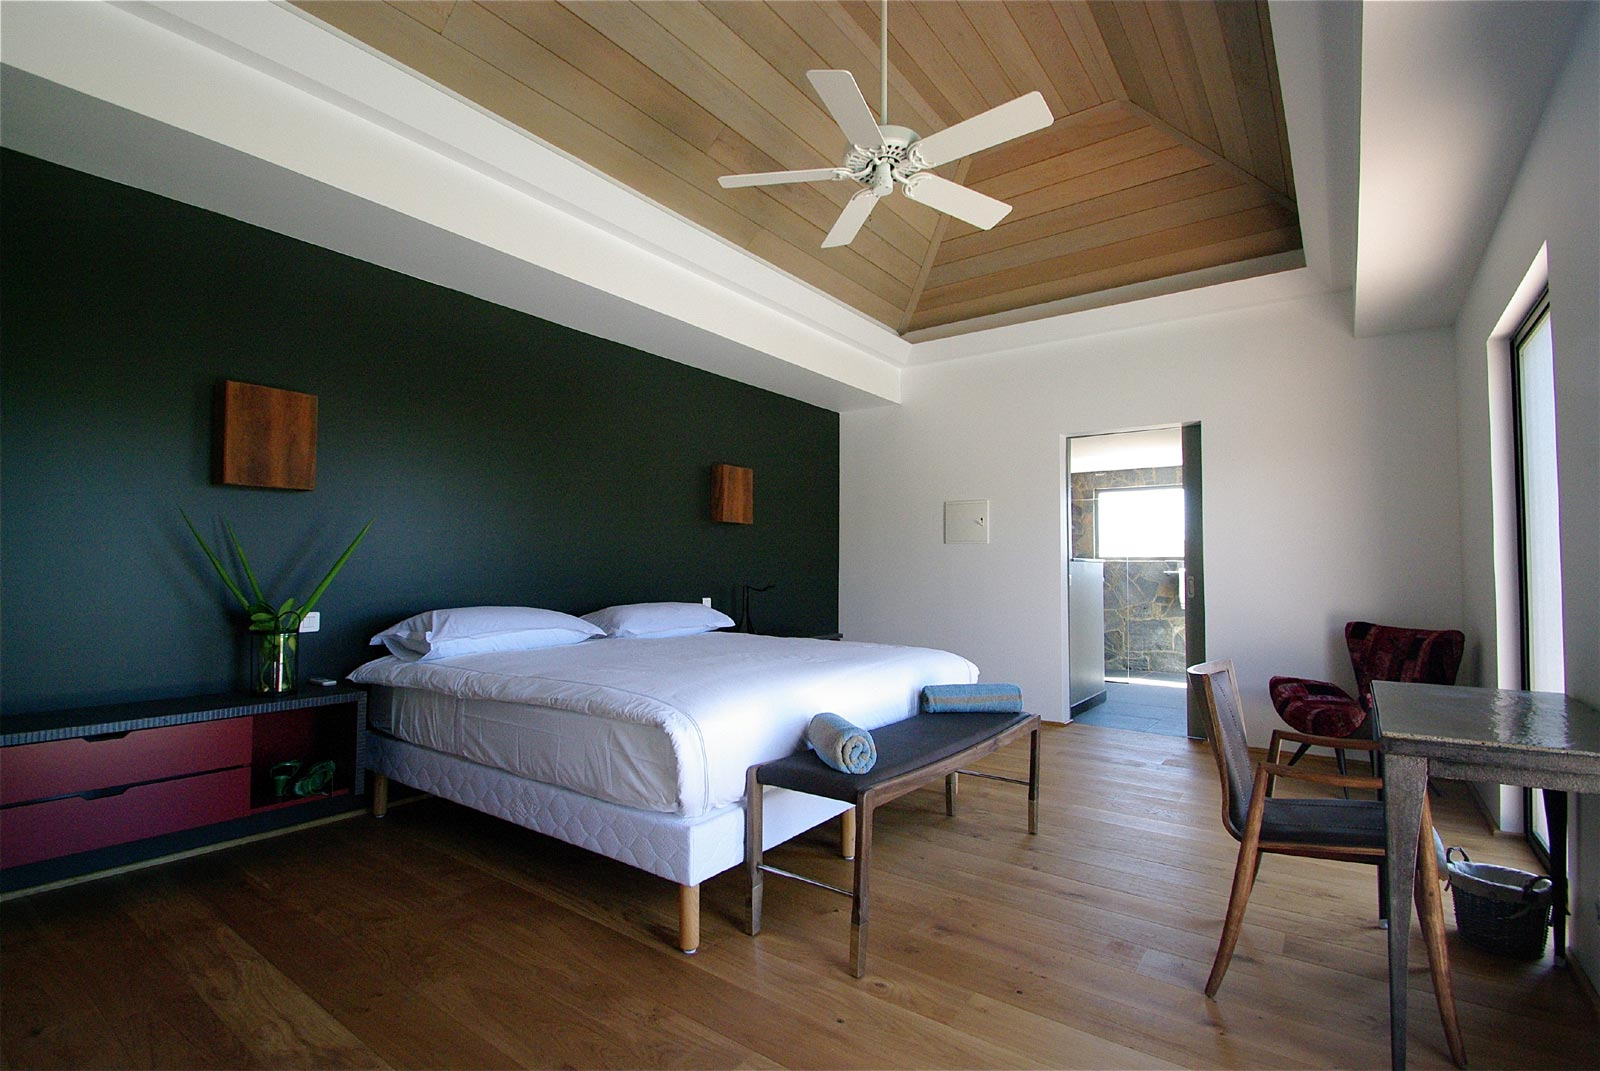 A spacious, modern bedroom at Green Lagoon  Petit Cul de Sac, St. Barts luxury vacation villas.